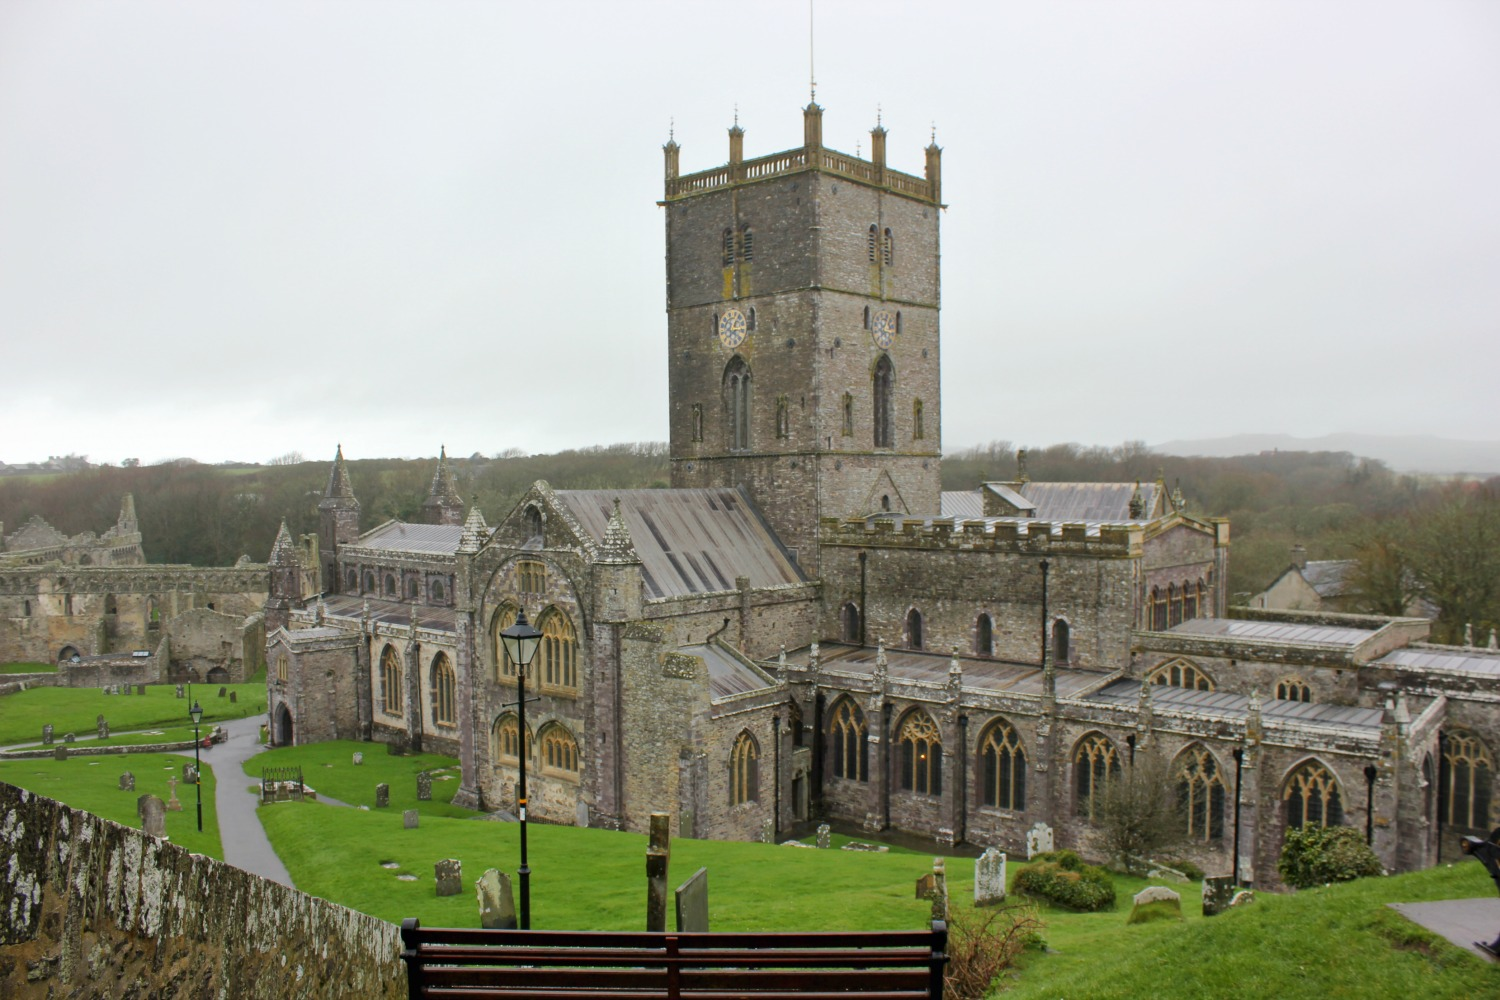 A view of St Davids cathedral in Wales - on our journey to discover Welsh legends